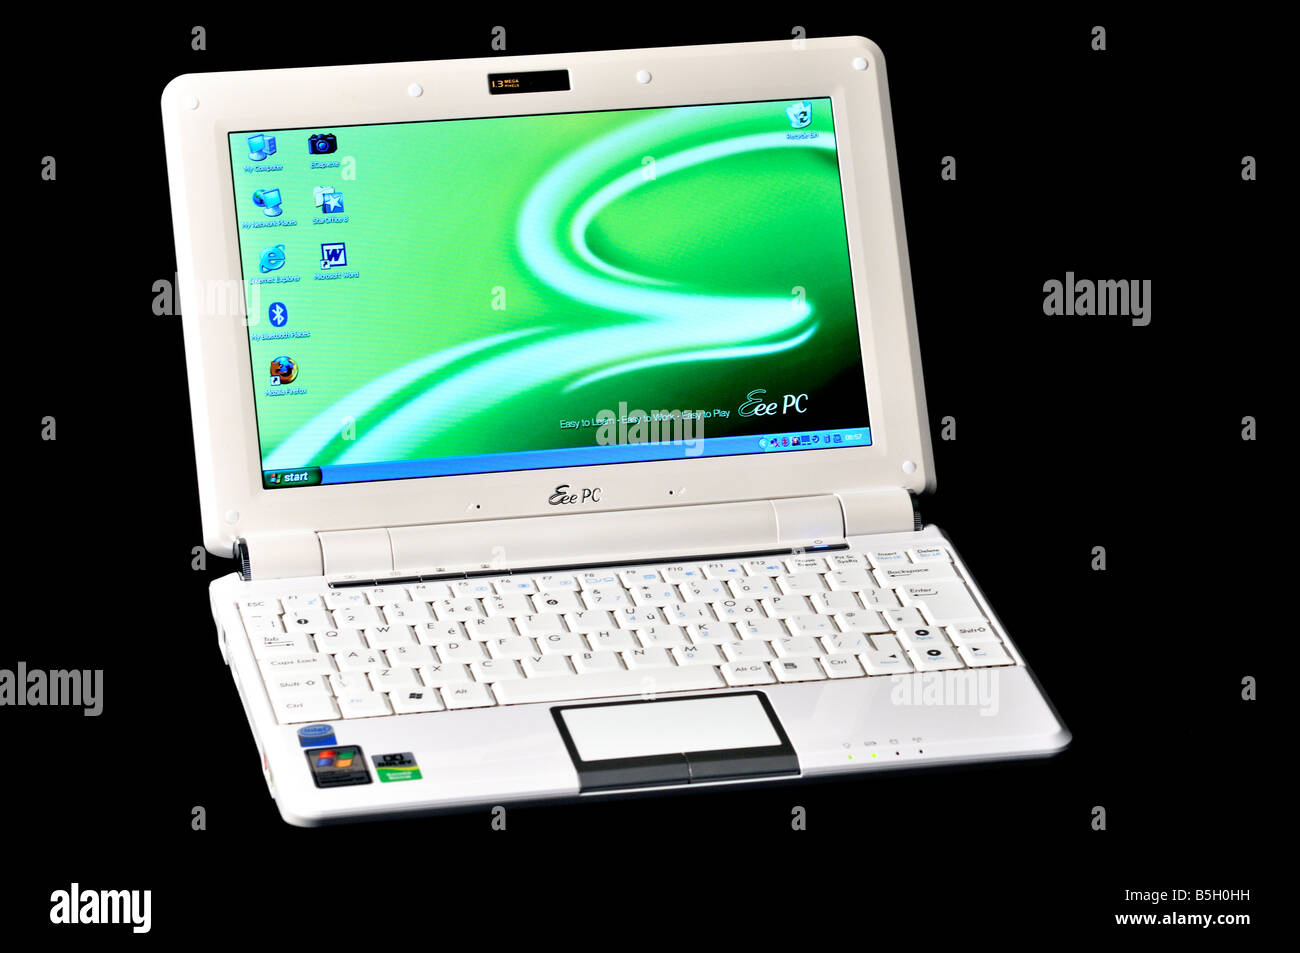 ASUS Eee PC showing keyboard and screen - Stock Image